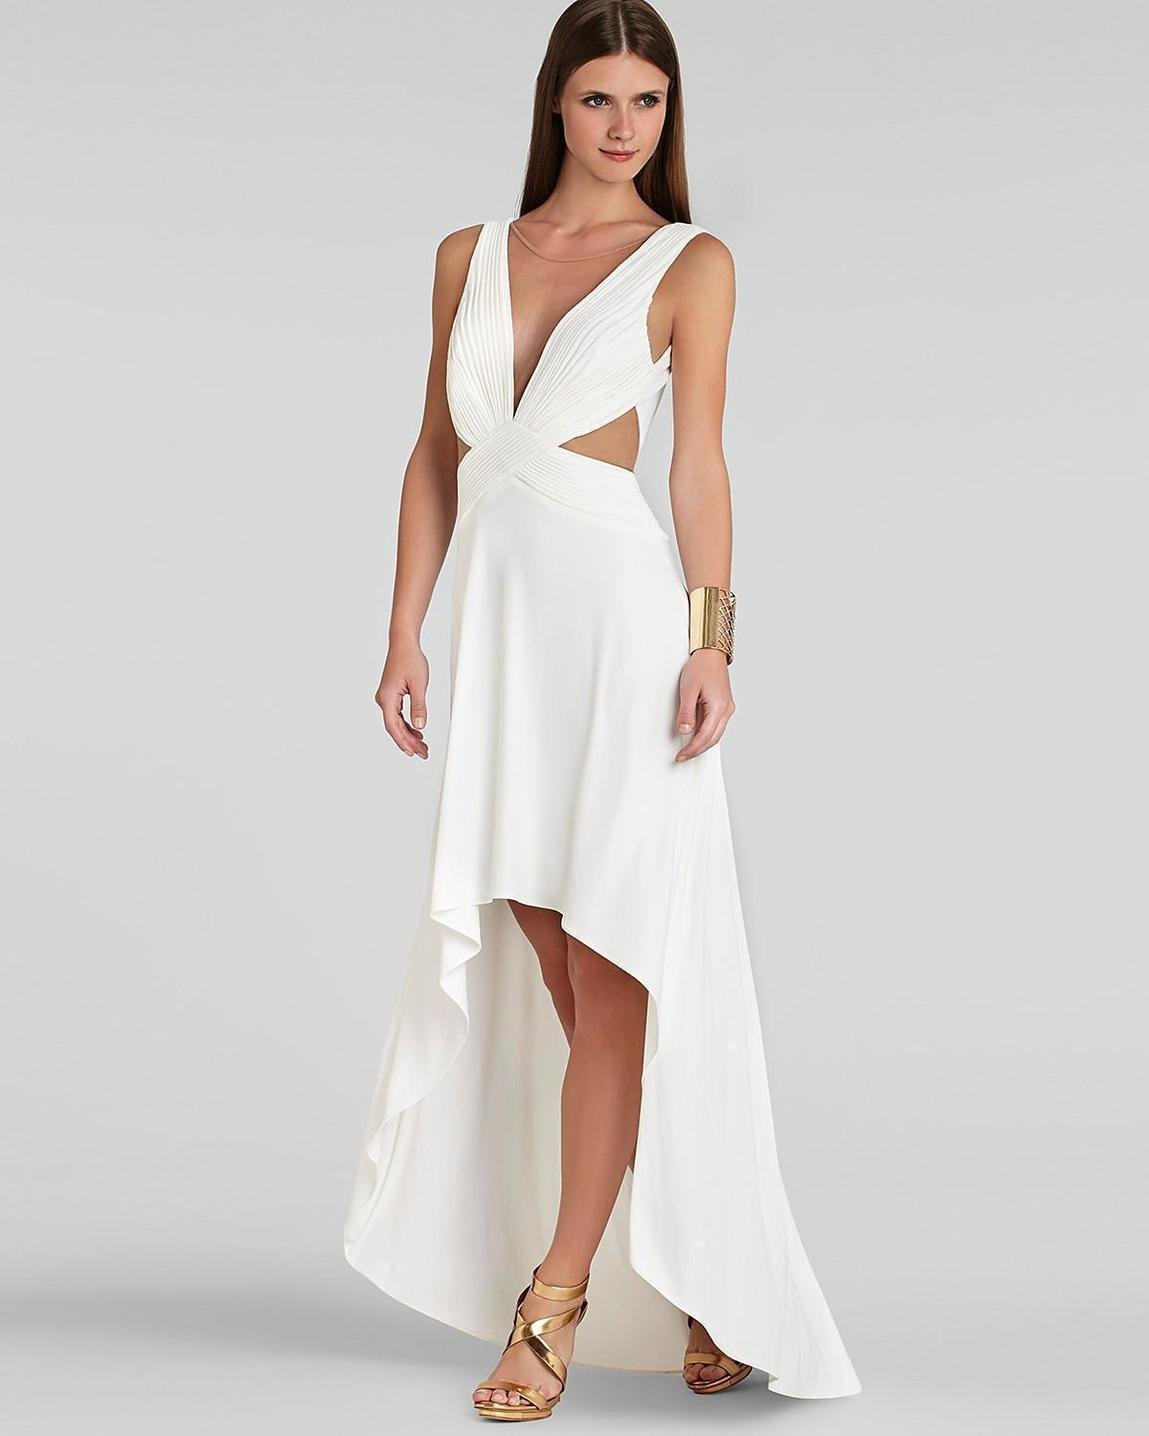 A V neckline high low dress